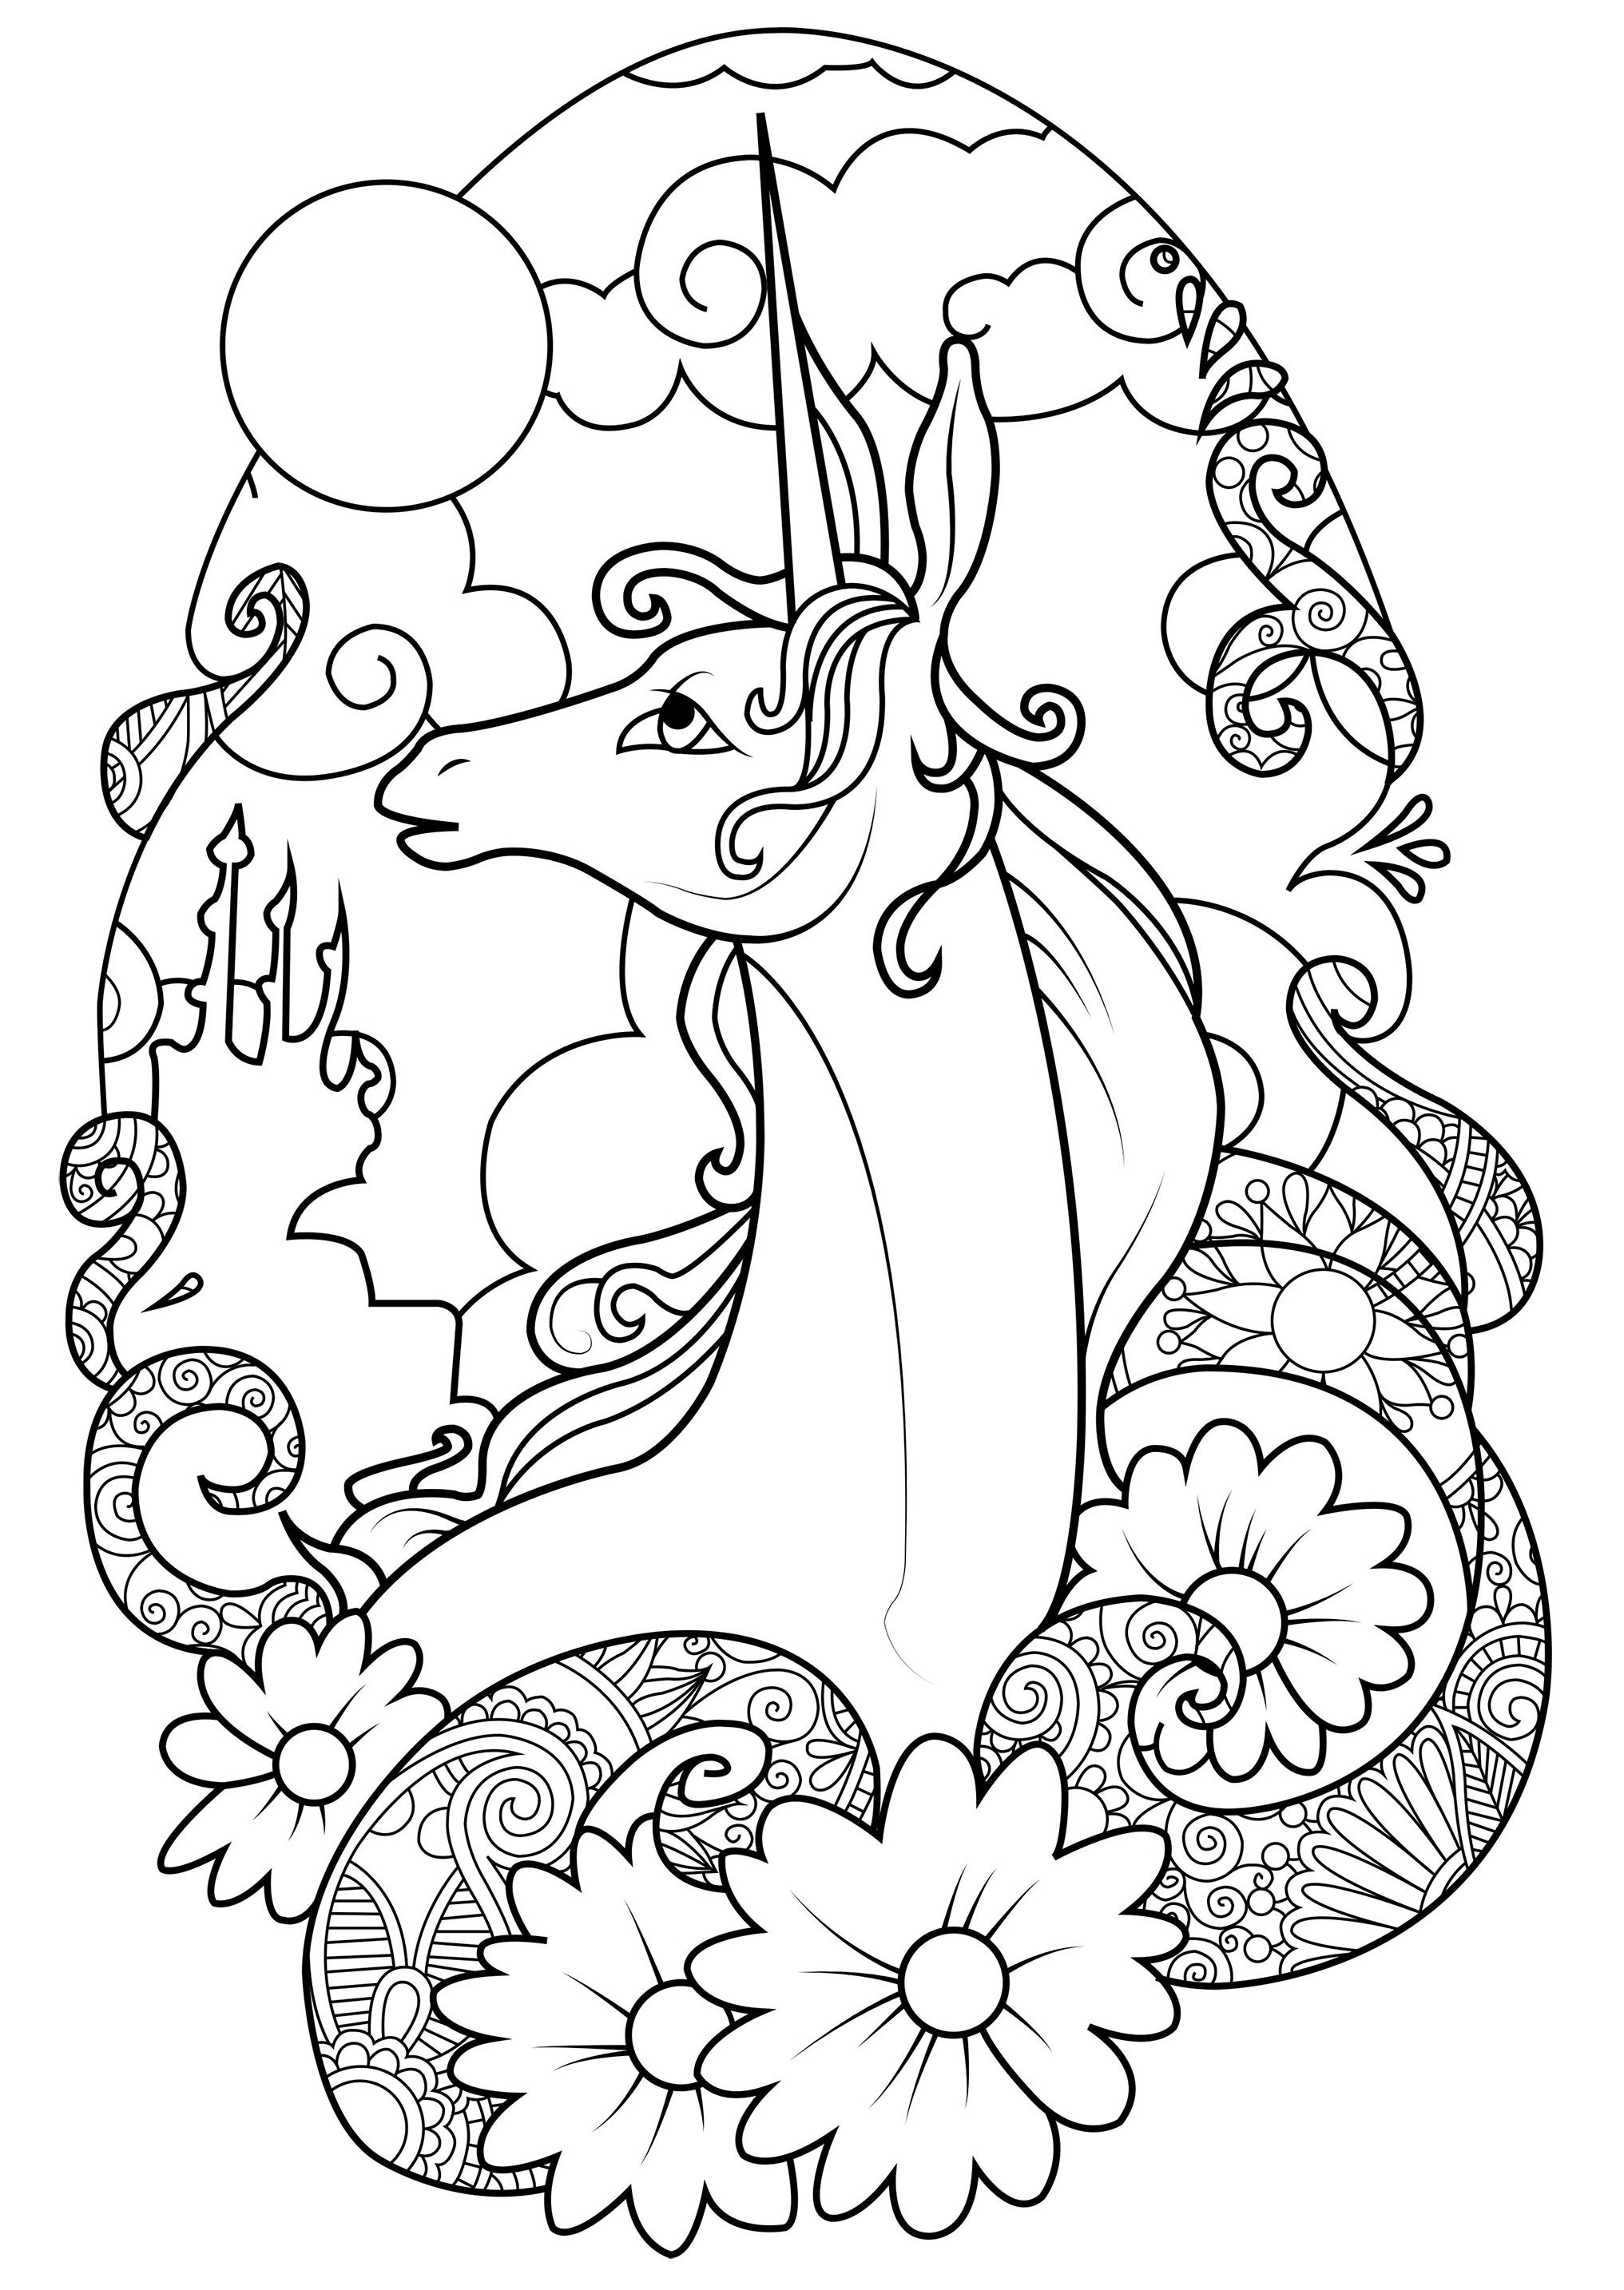 Caticorn Coloring Page Coloring Page - Unicorn Coloring Pages